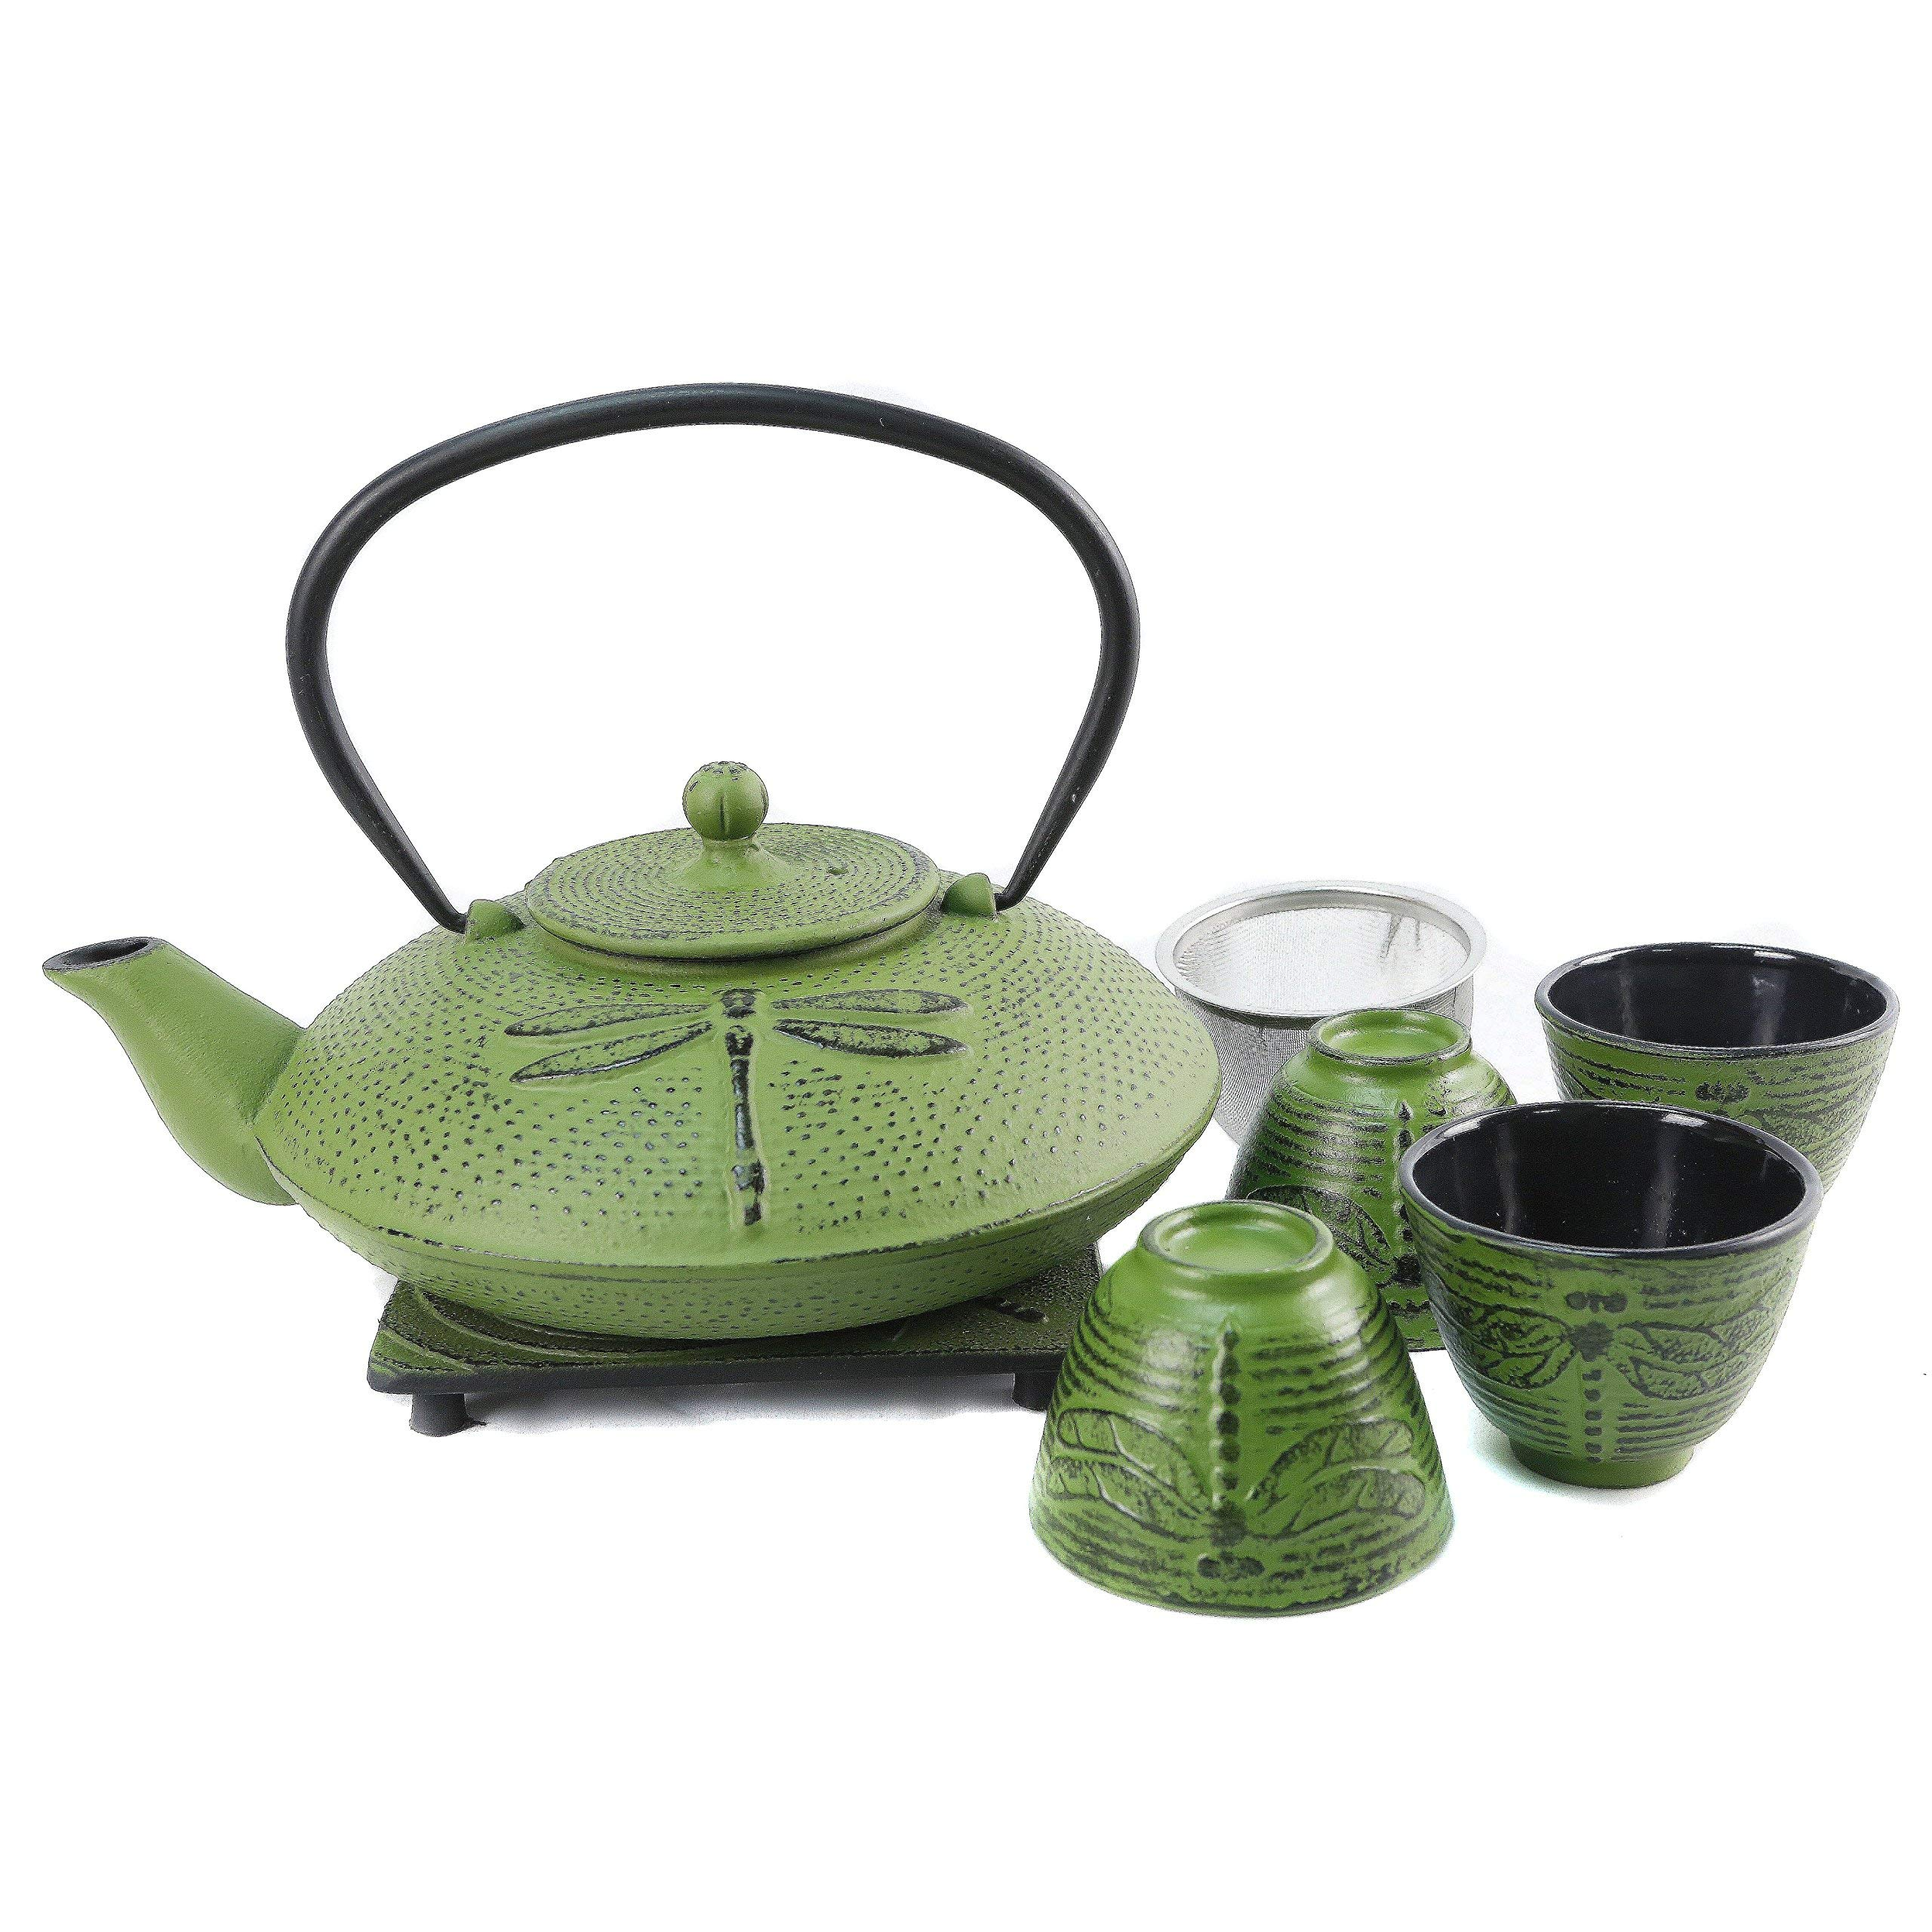 Cuisiland Dragonfly Cast Iron Teapot Set with 4 Cups 37oz Green